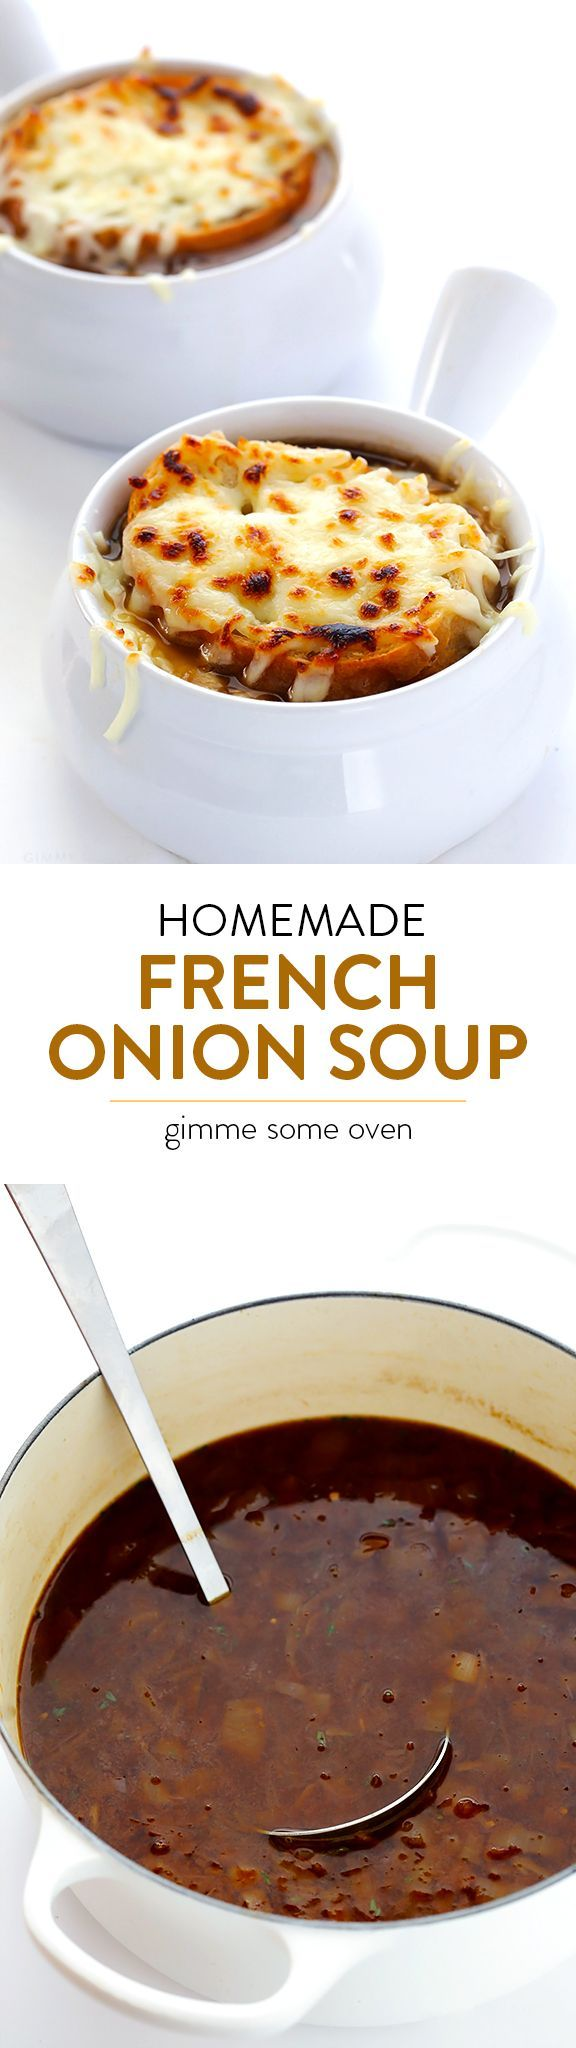 Learn how to make classic French Onion Soup at home! It's easy to make than you might think, and always SO delicious!